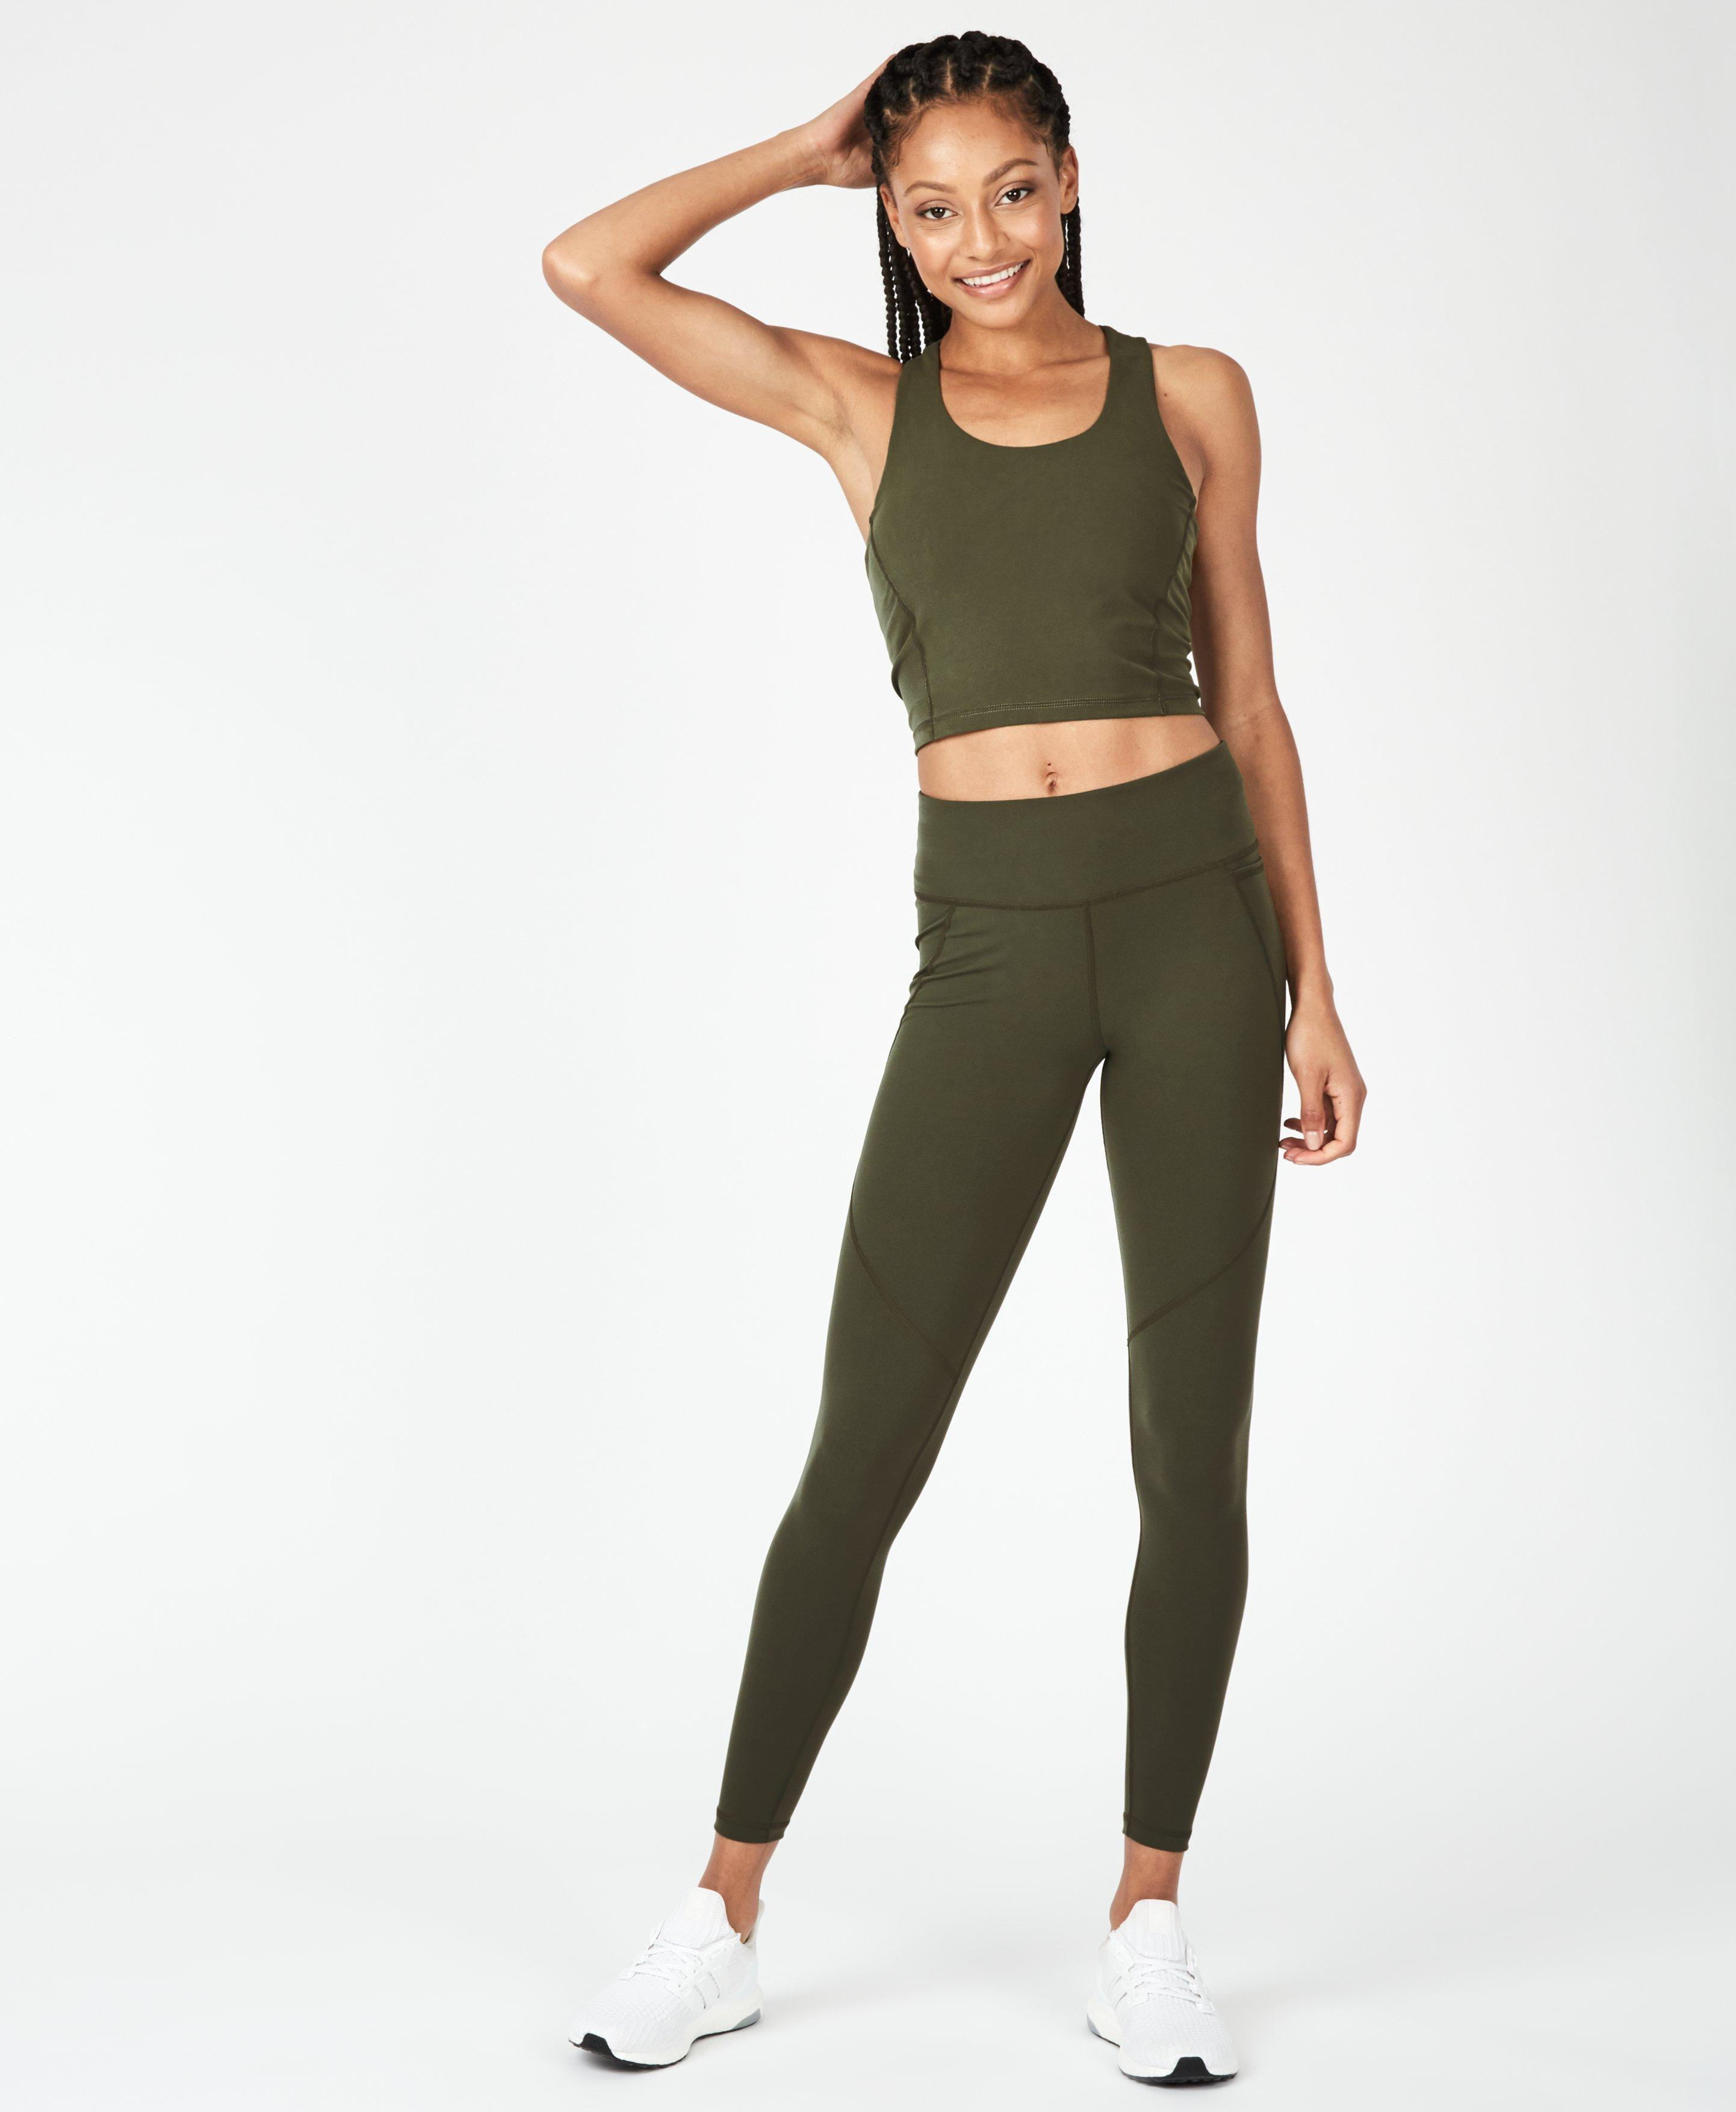 Power Olive Set,  | Sweaty Betty